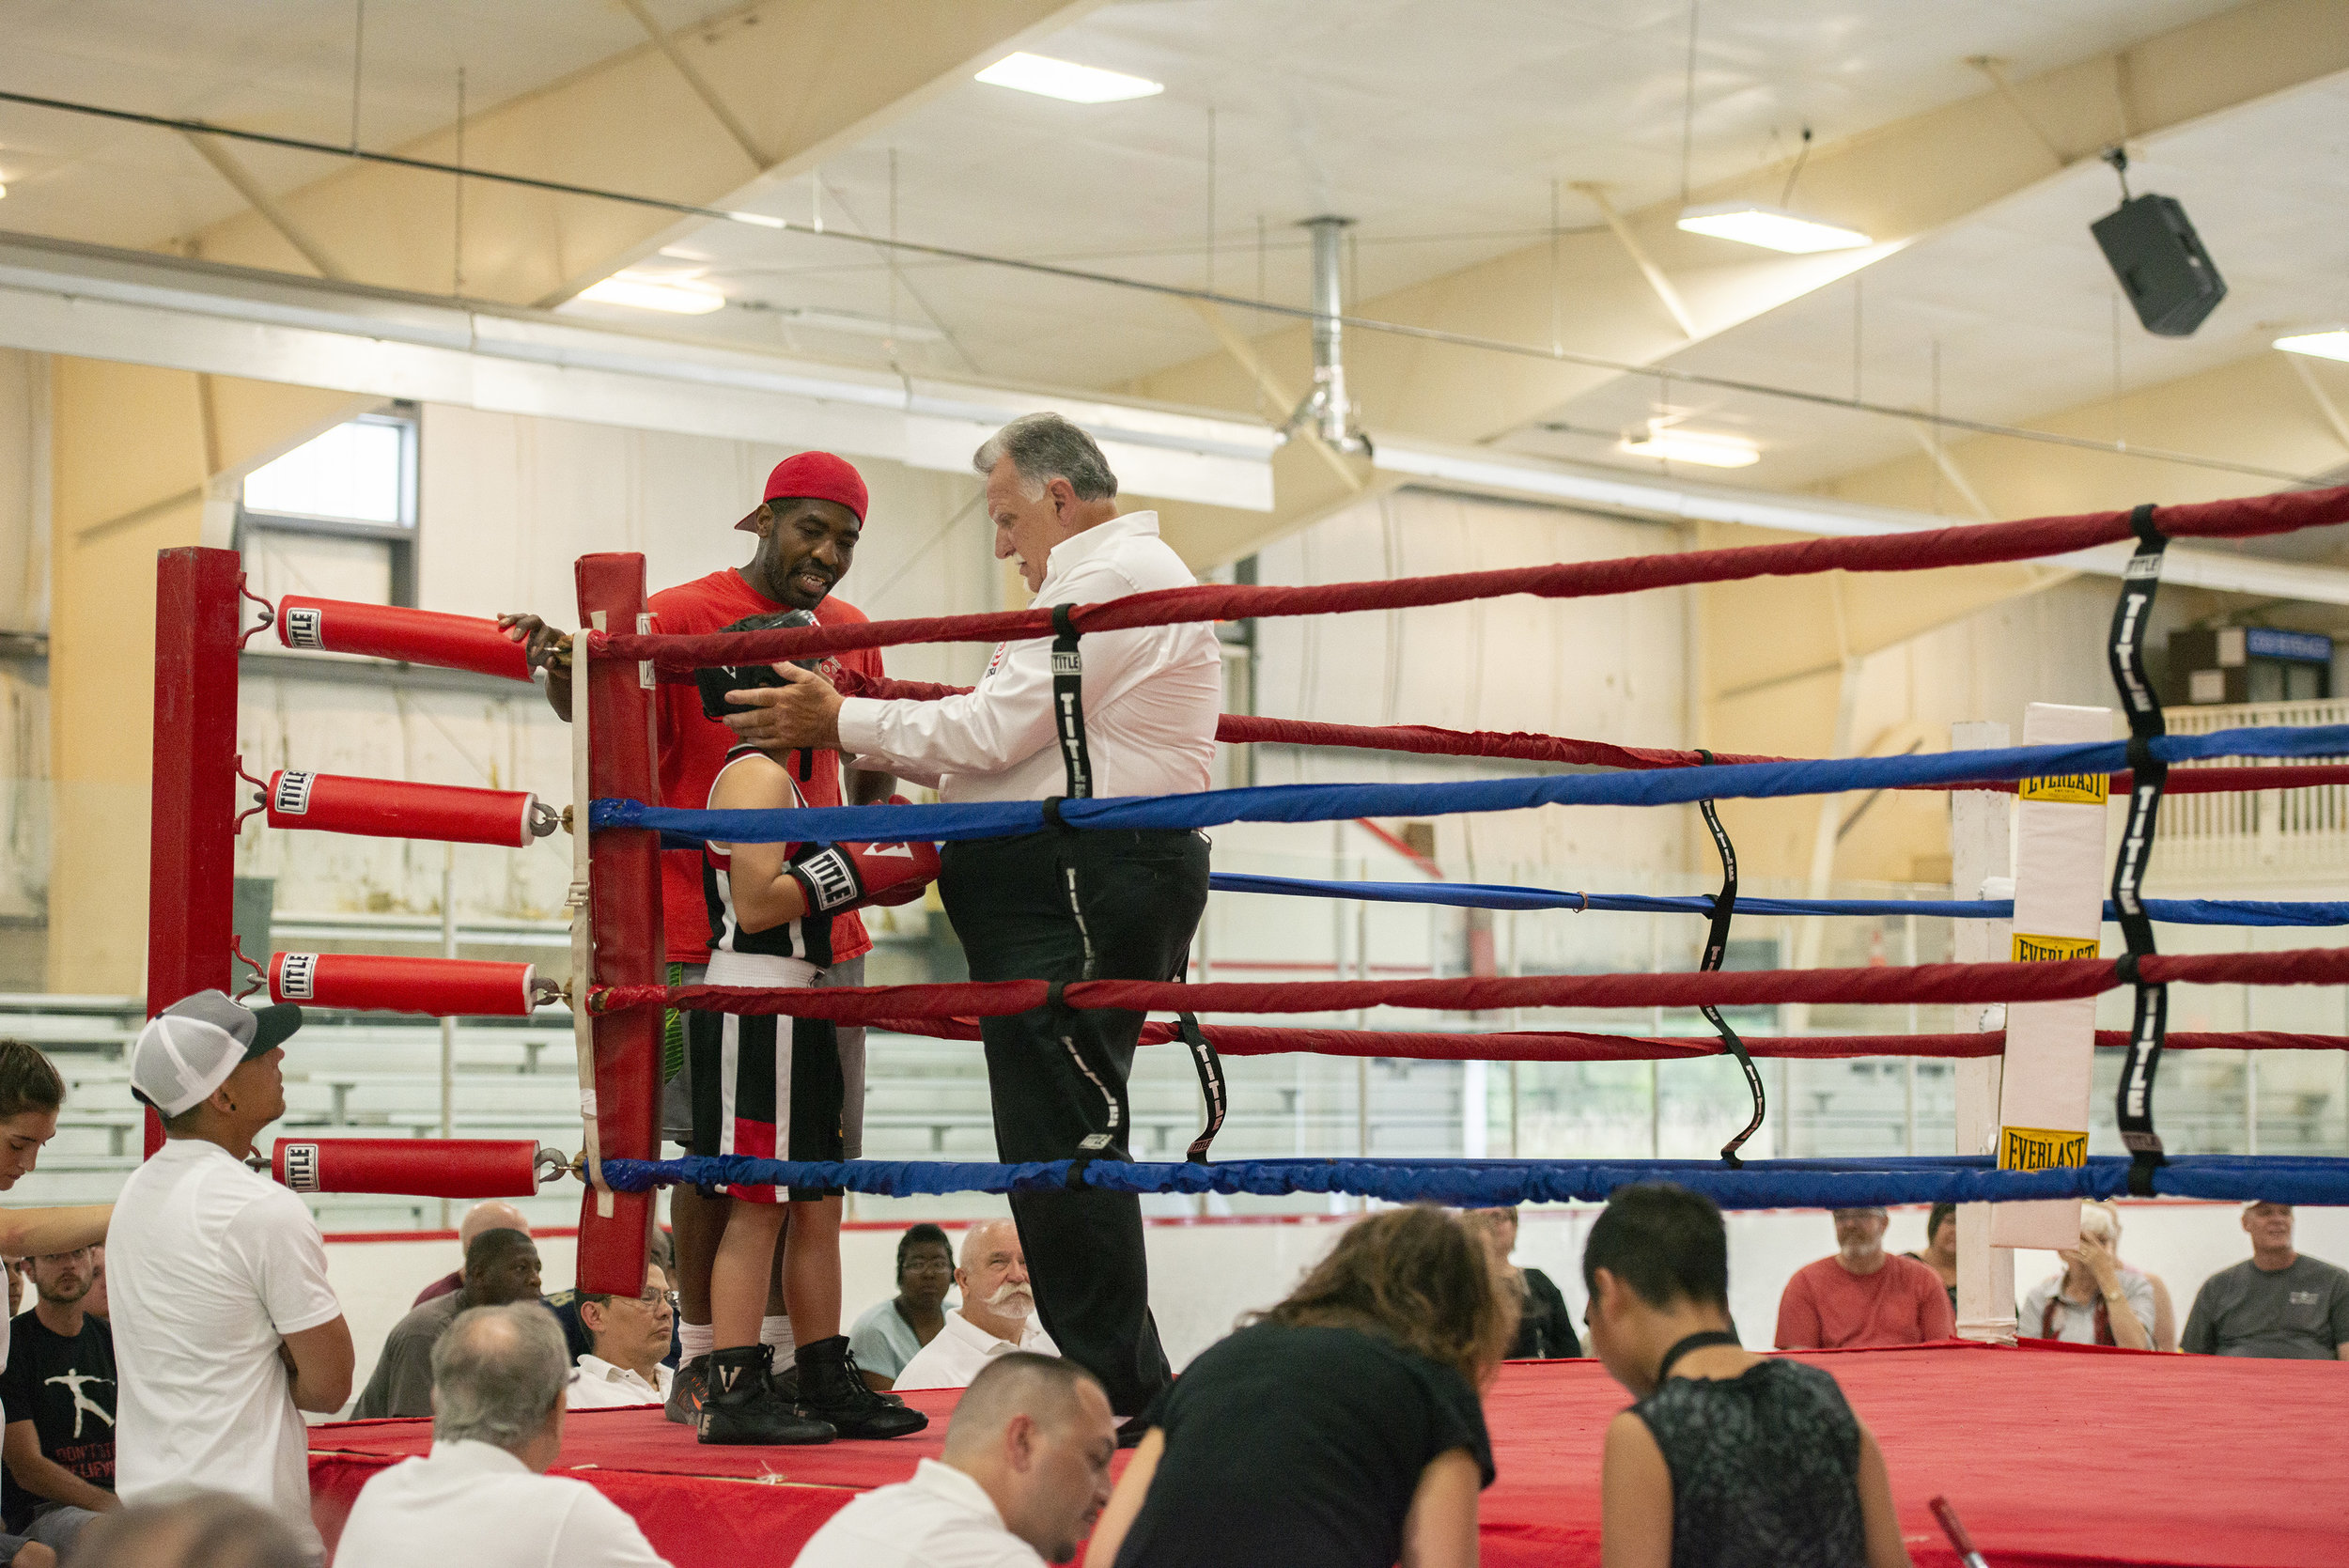 Boxing_Show_Reverie_photography_Peek-a-Boo_Boxing_Gym_River Falls.jpg